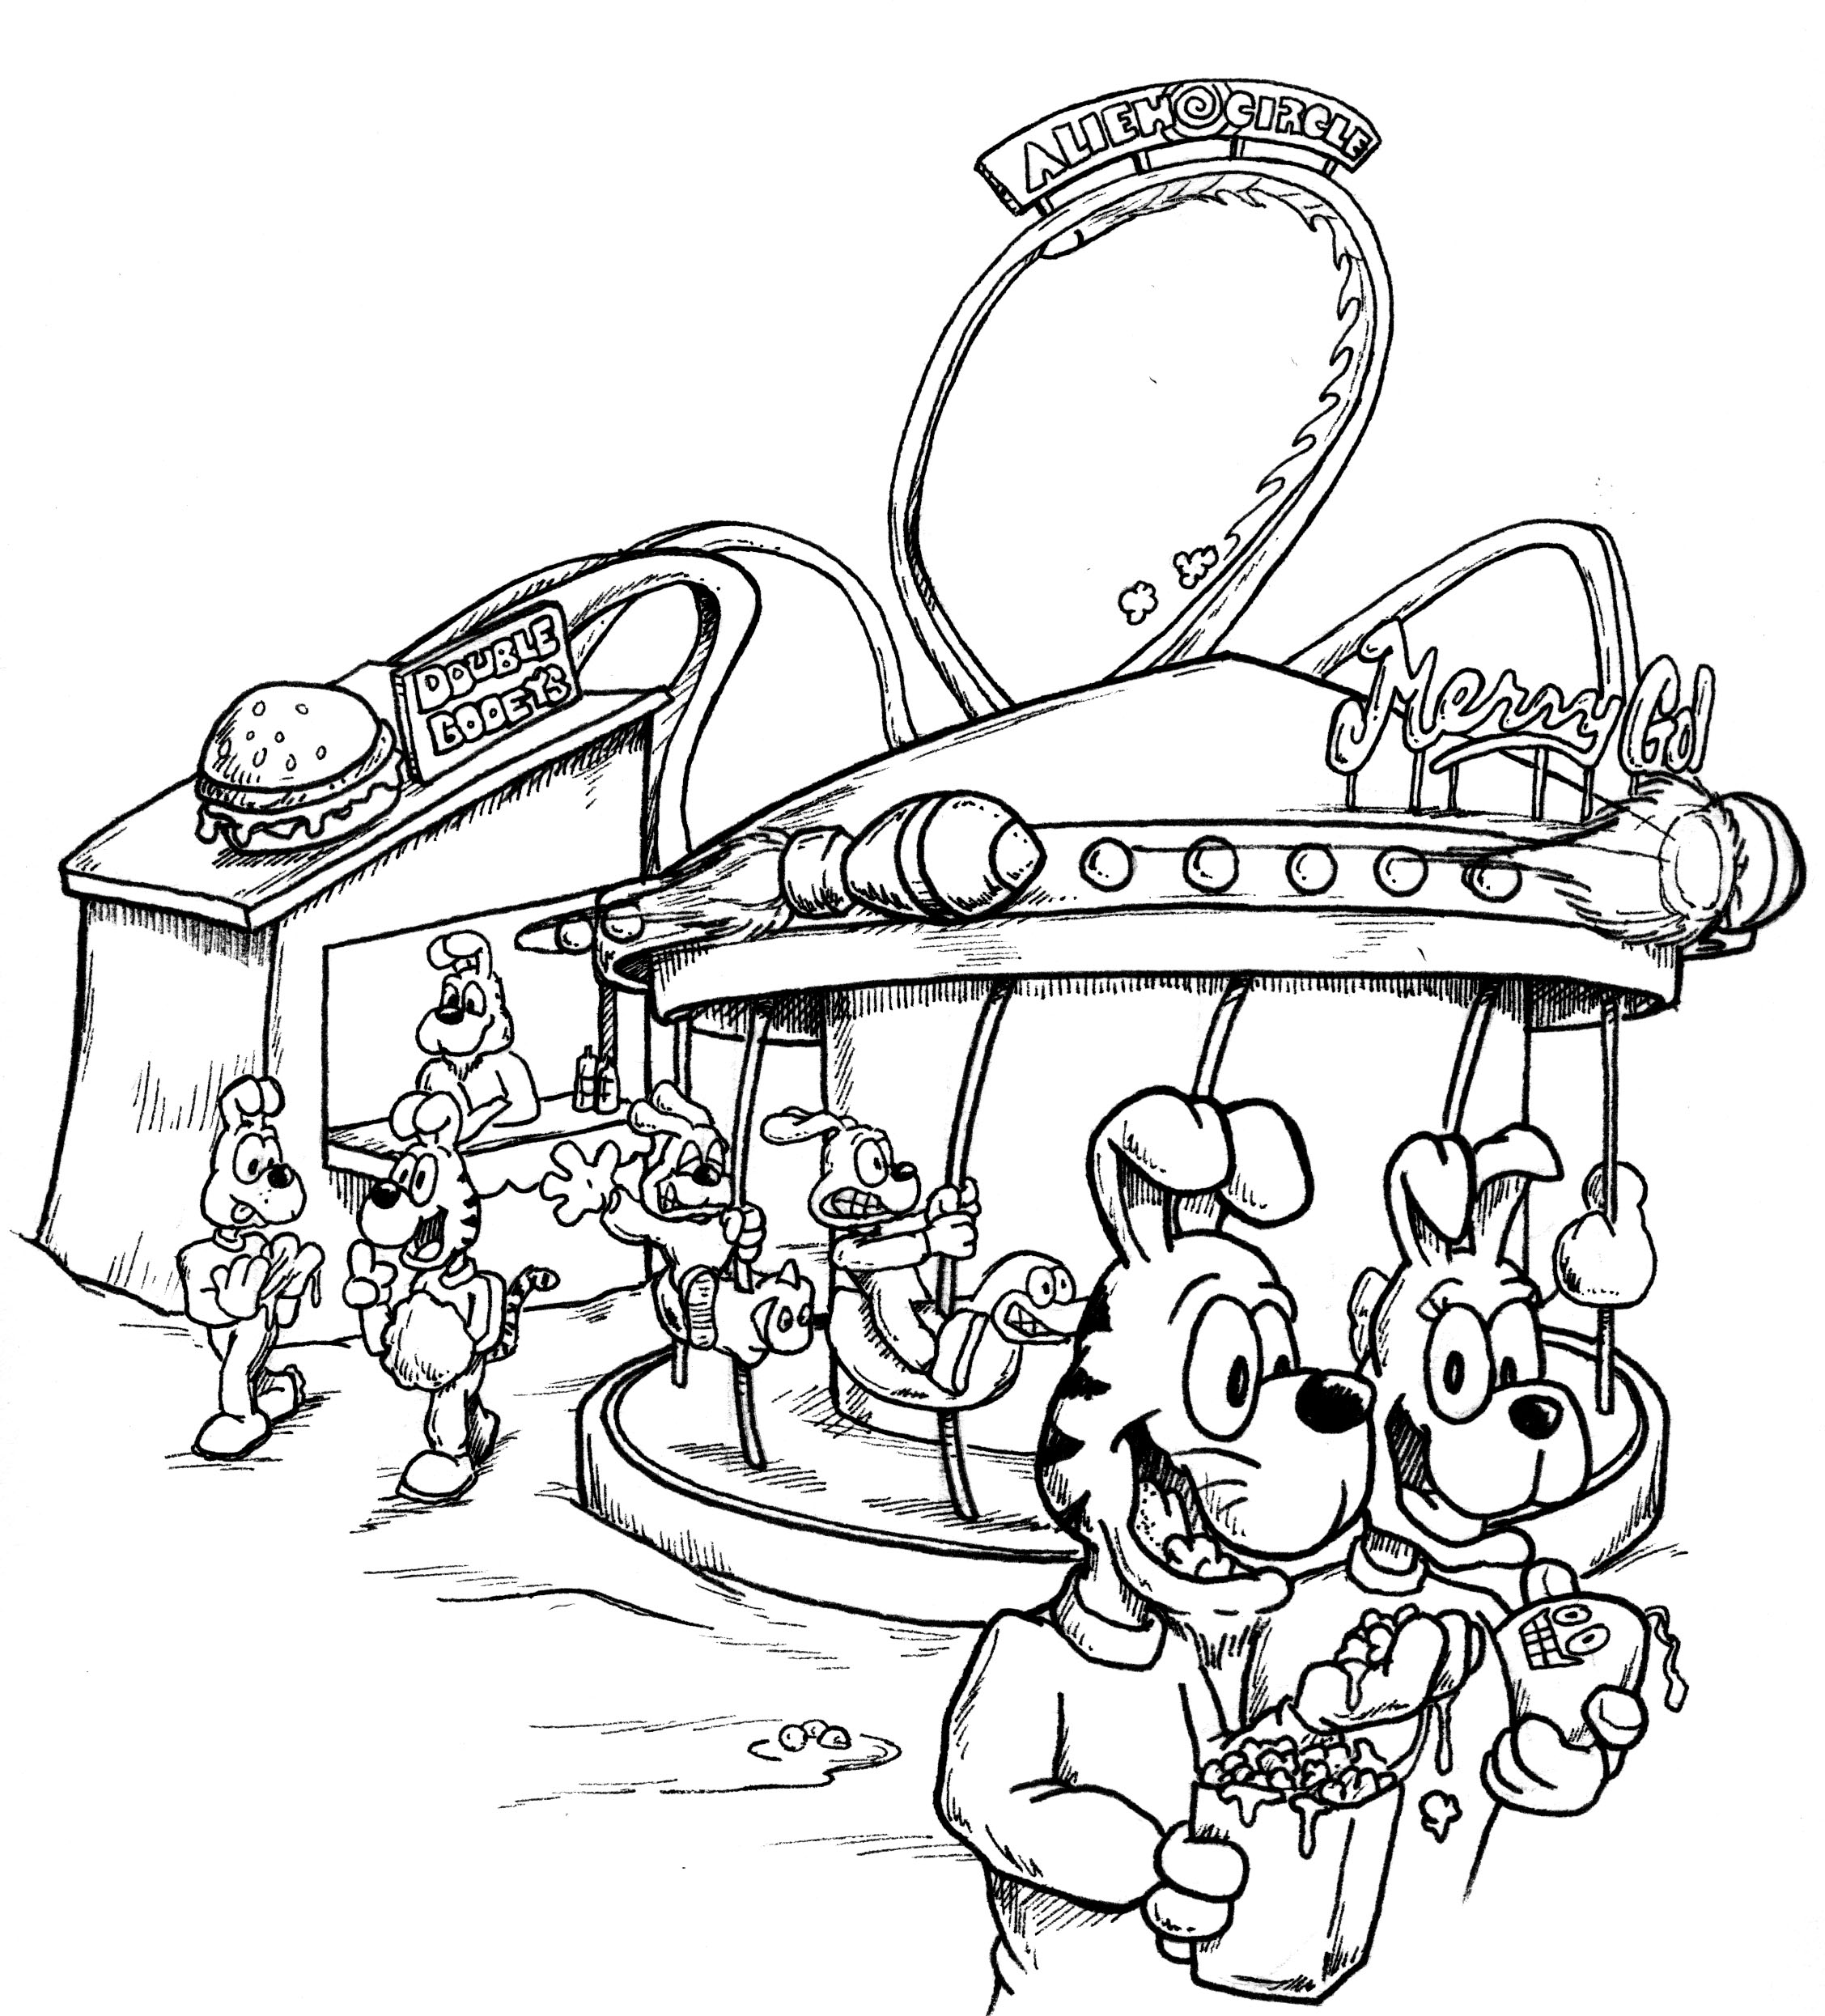 Carnival coloring pages to download